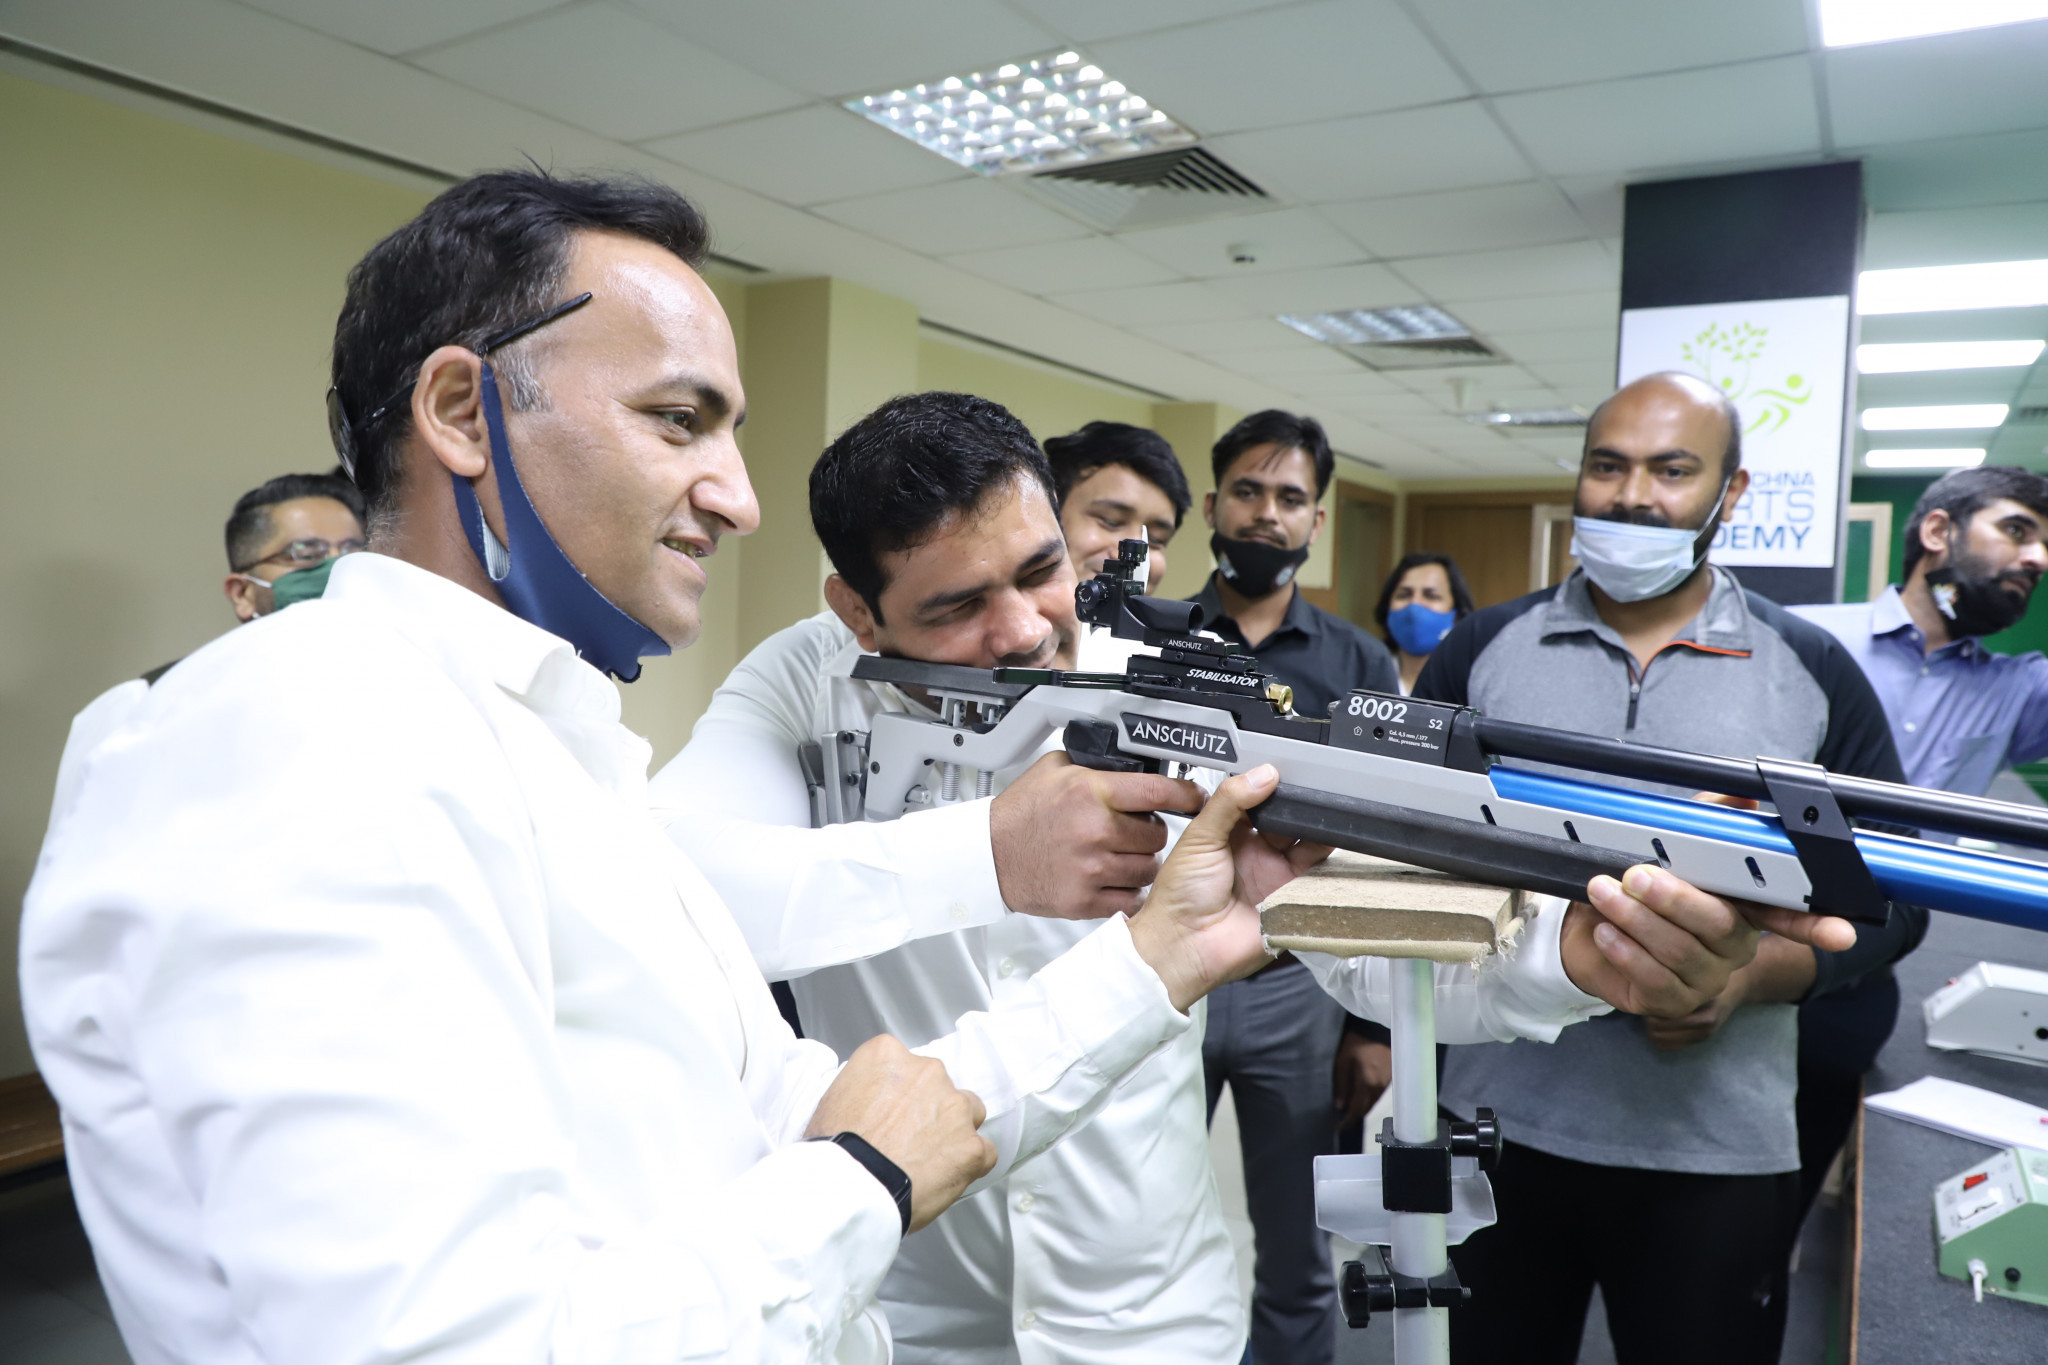 Wrestler Sushil Kumar fired the first shot at the 10-metre shooting range to mark the opening of the National Para Shooting Championship ©PCI